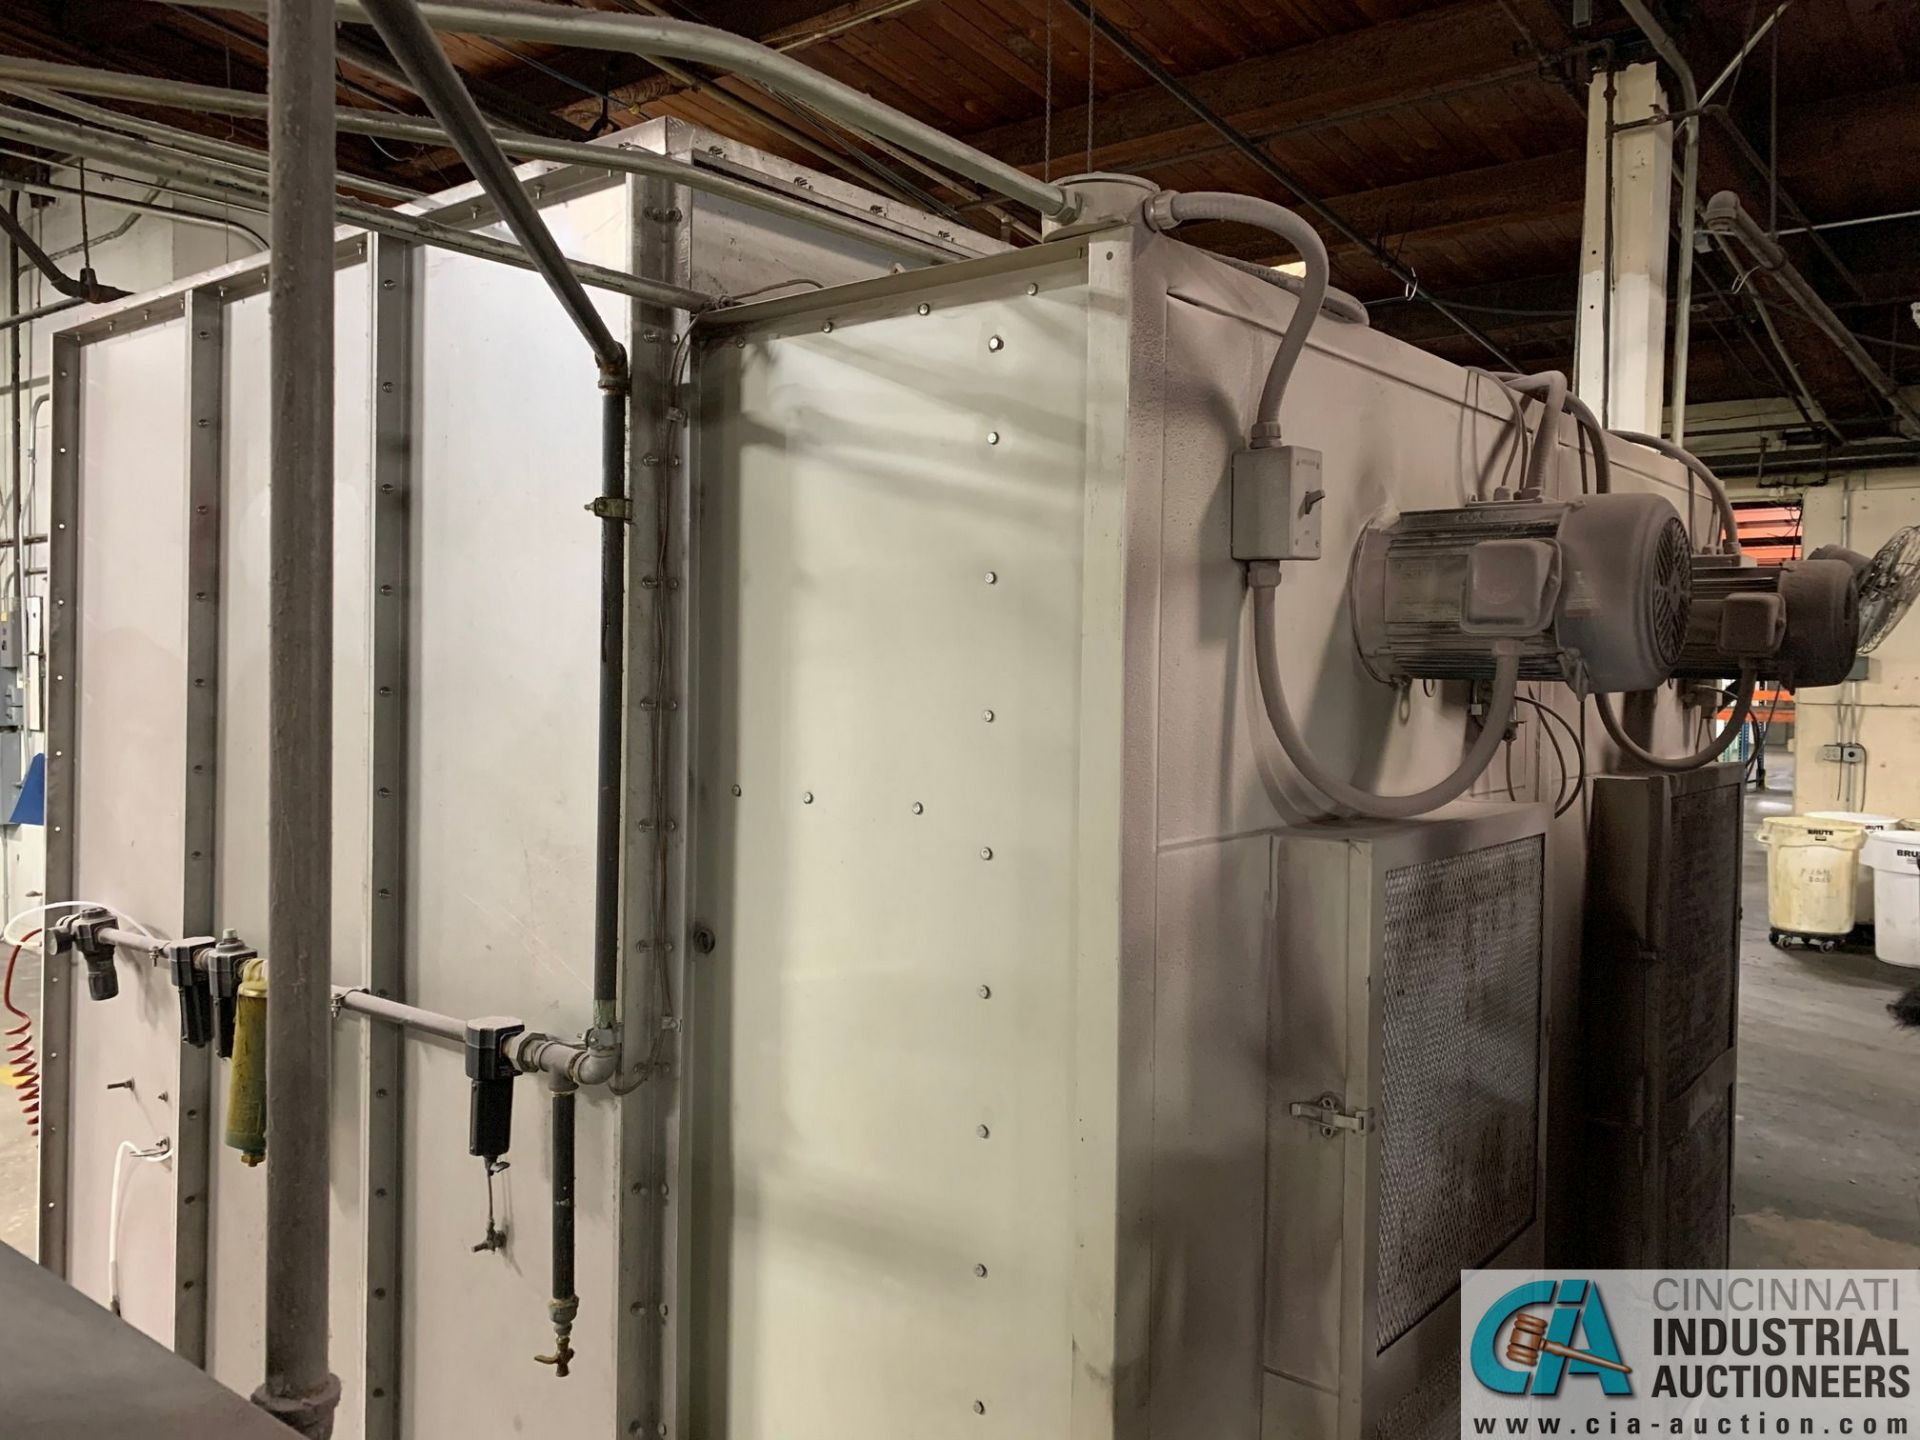 "8' X 6' X 90"" DEIMCO PWI-08-08-06-2-3K POWDER COAT BOOTH - Approx. $30,000 replacement cost - Image 9 of 11"